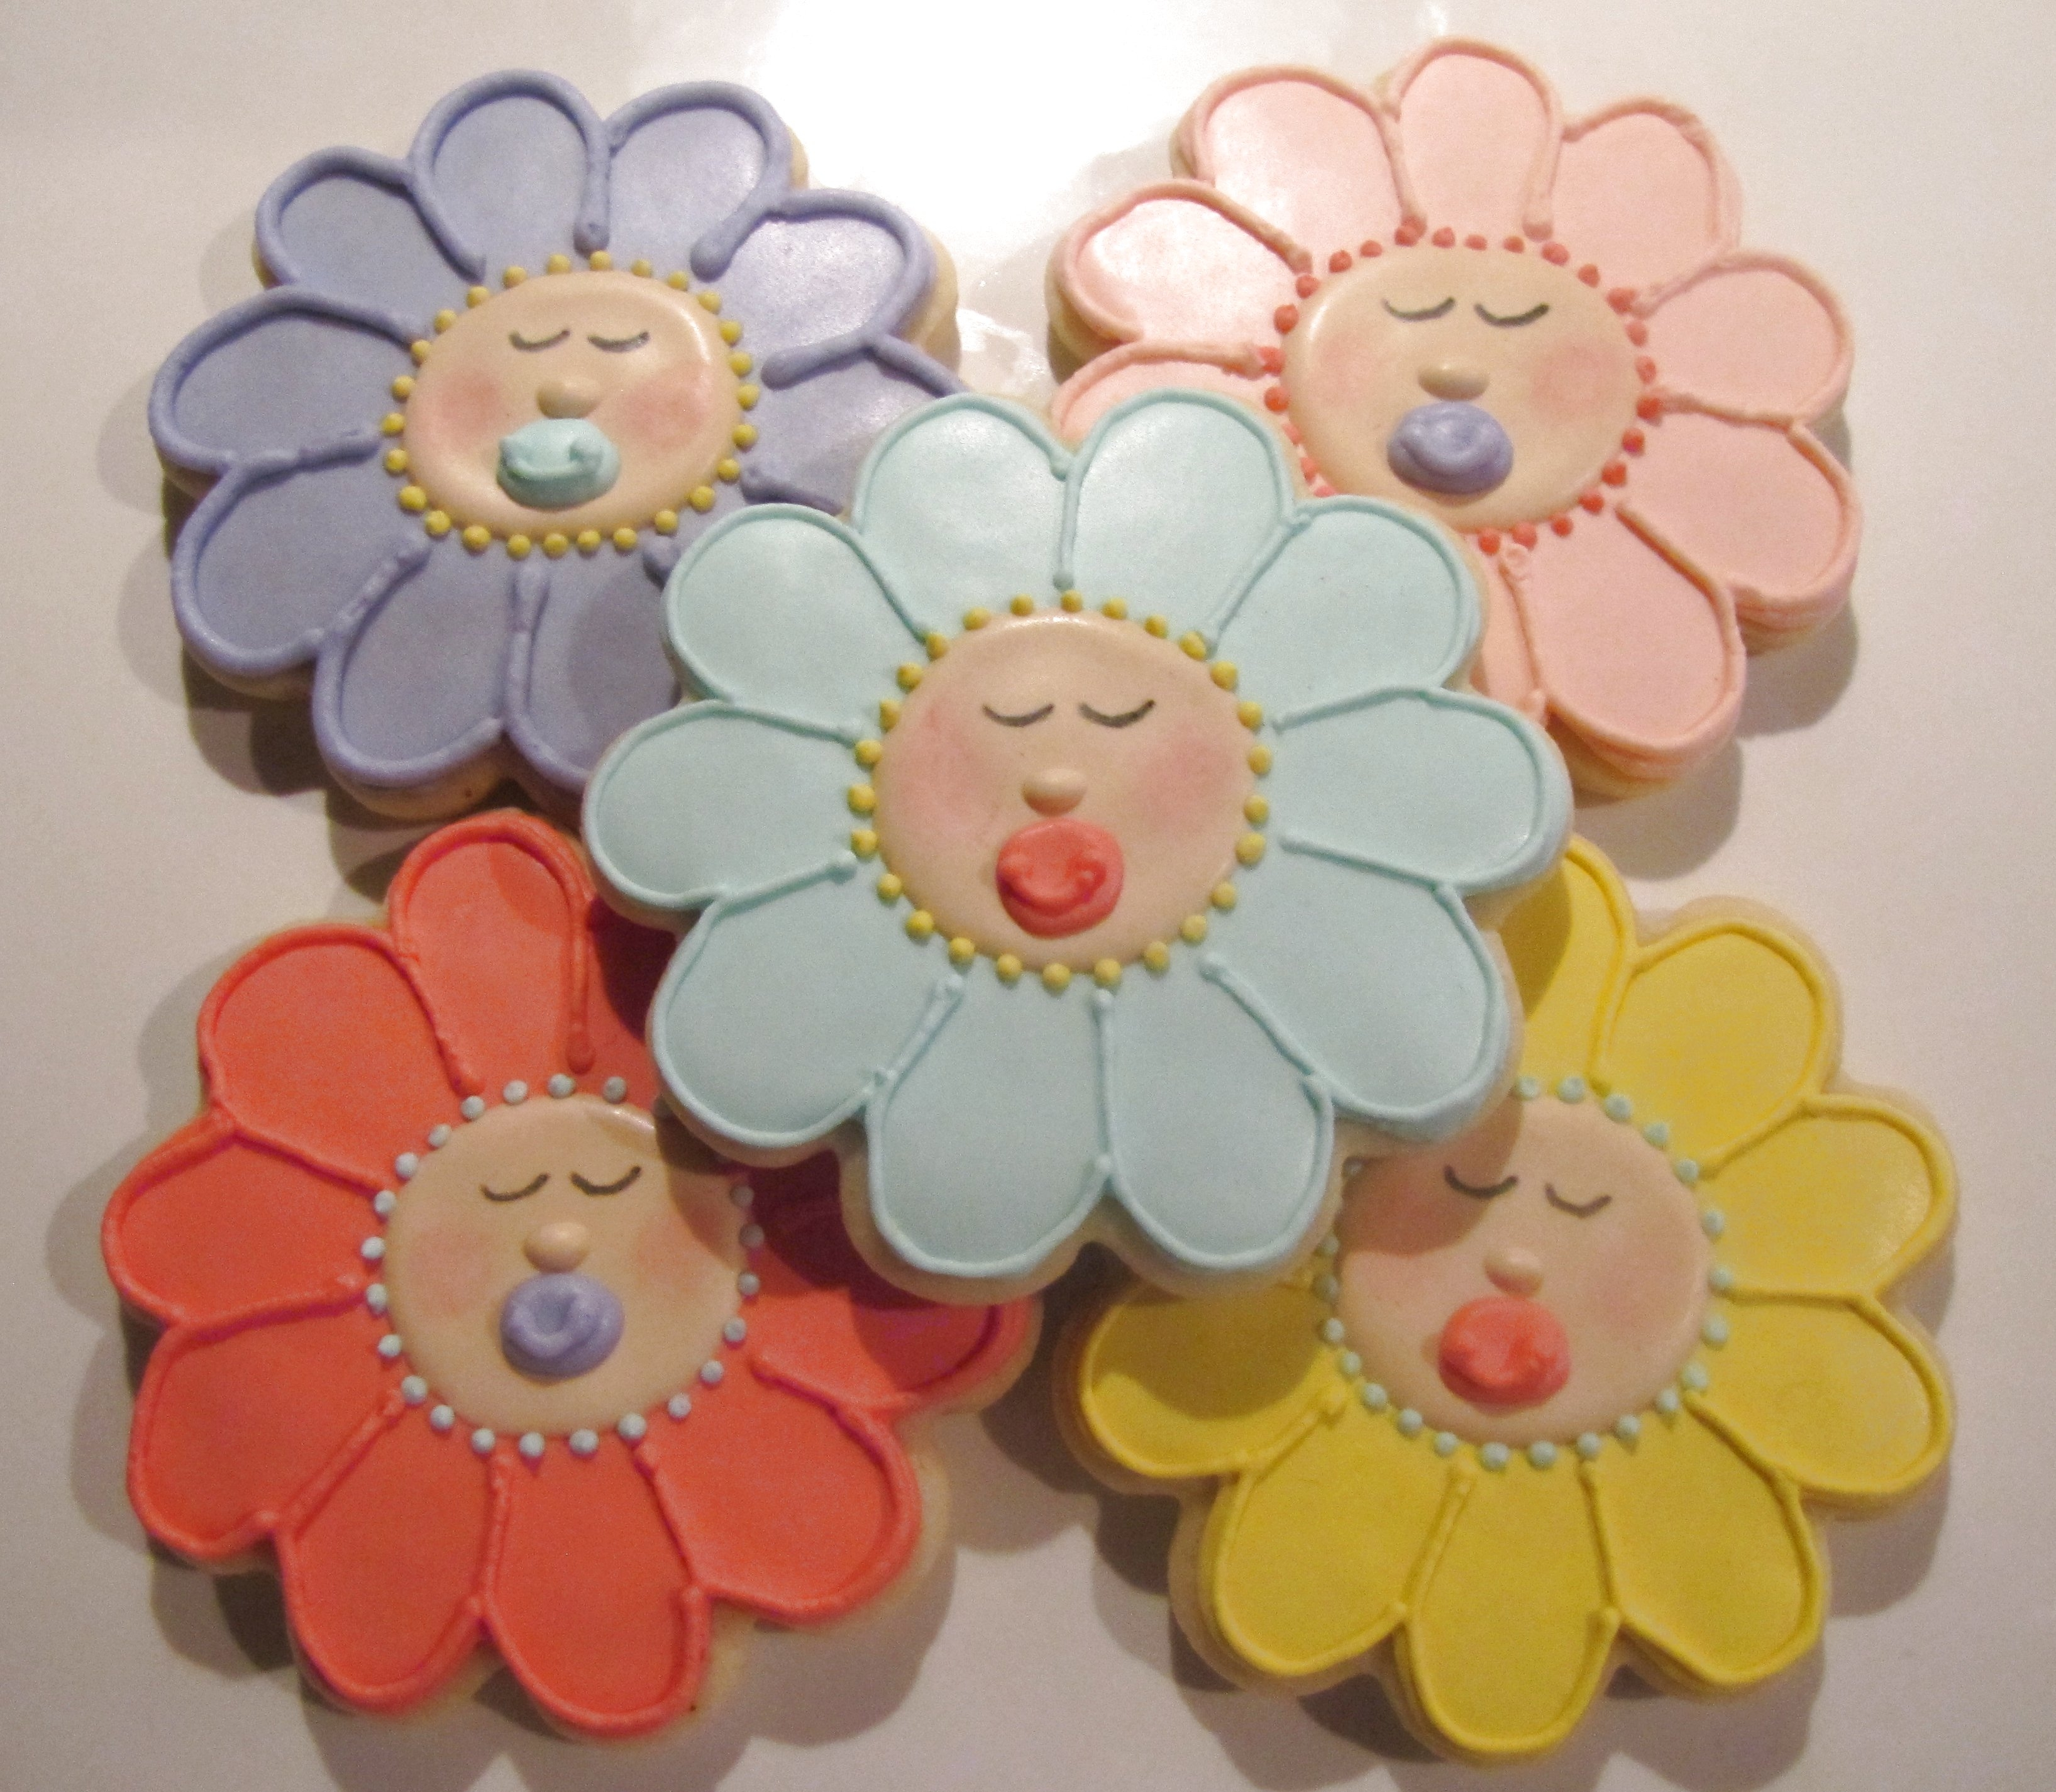 Baby flower faces for a baby shower.  Vanilla sugar cookies with a modified RI.  Pink petal dust on cheeks.  Design inspired by Sugarbelle.  Sorry for the poor quality photo; had to take it at night.  Colors were more pastel.